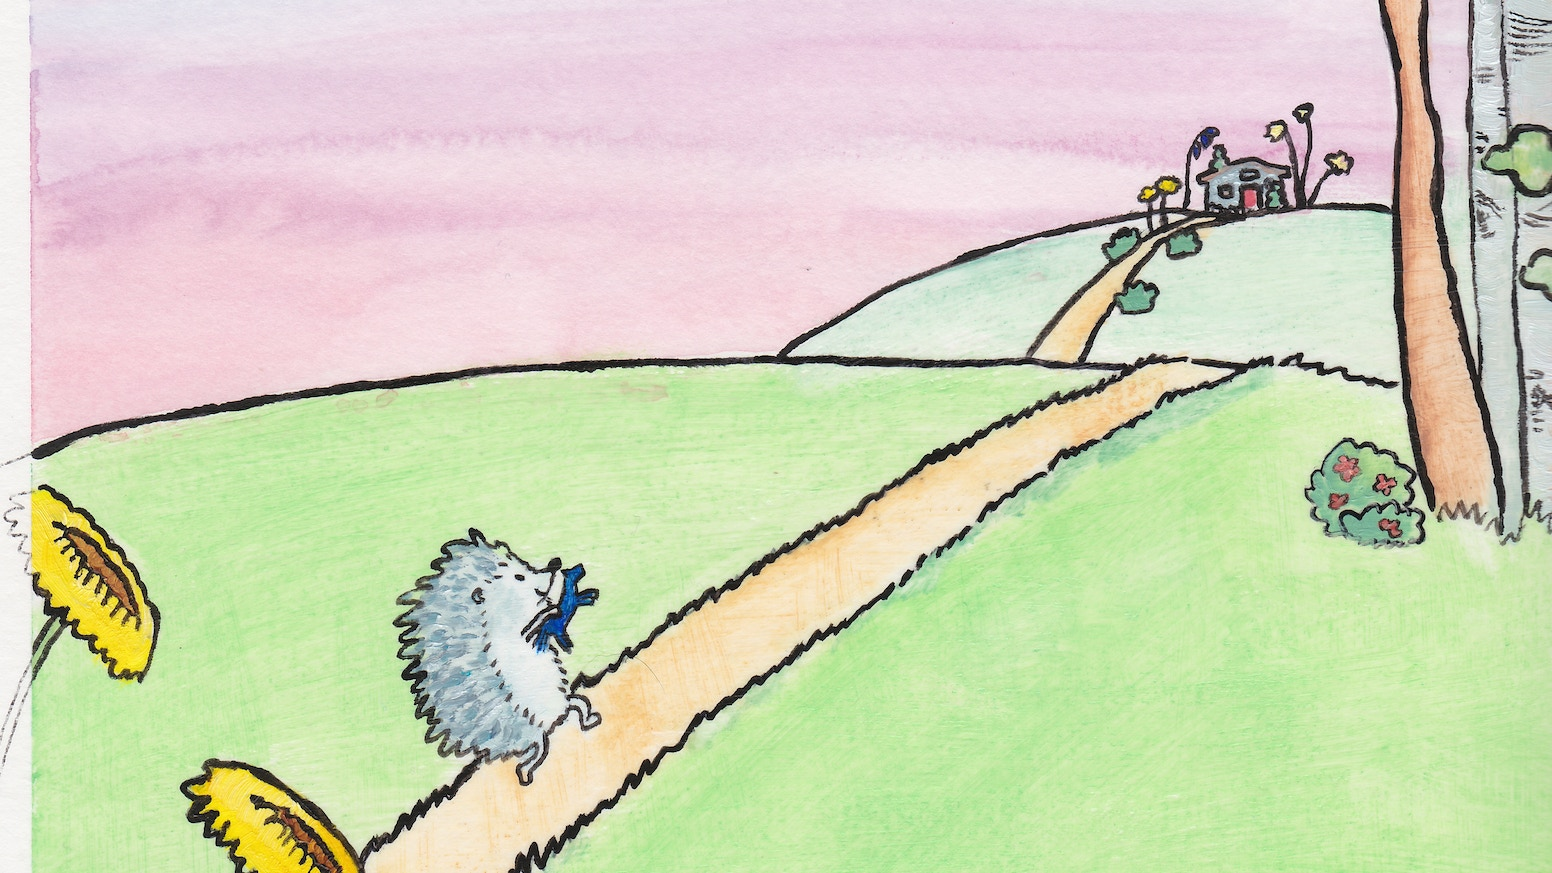 Quigley the quiet hedgehog by claudine norden kickstarter a childrens book about empowering the quiet temperament of the introverted child and to teach the world that quiet is okay gumiabroncs Choice Image